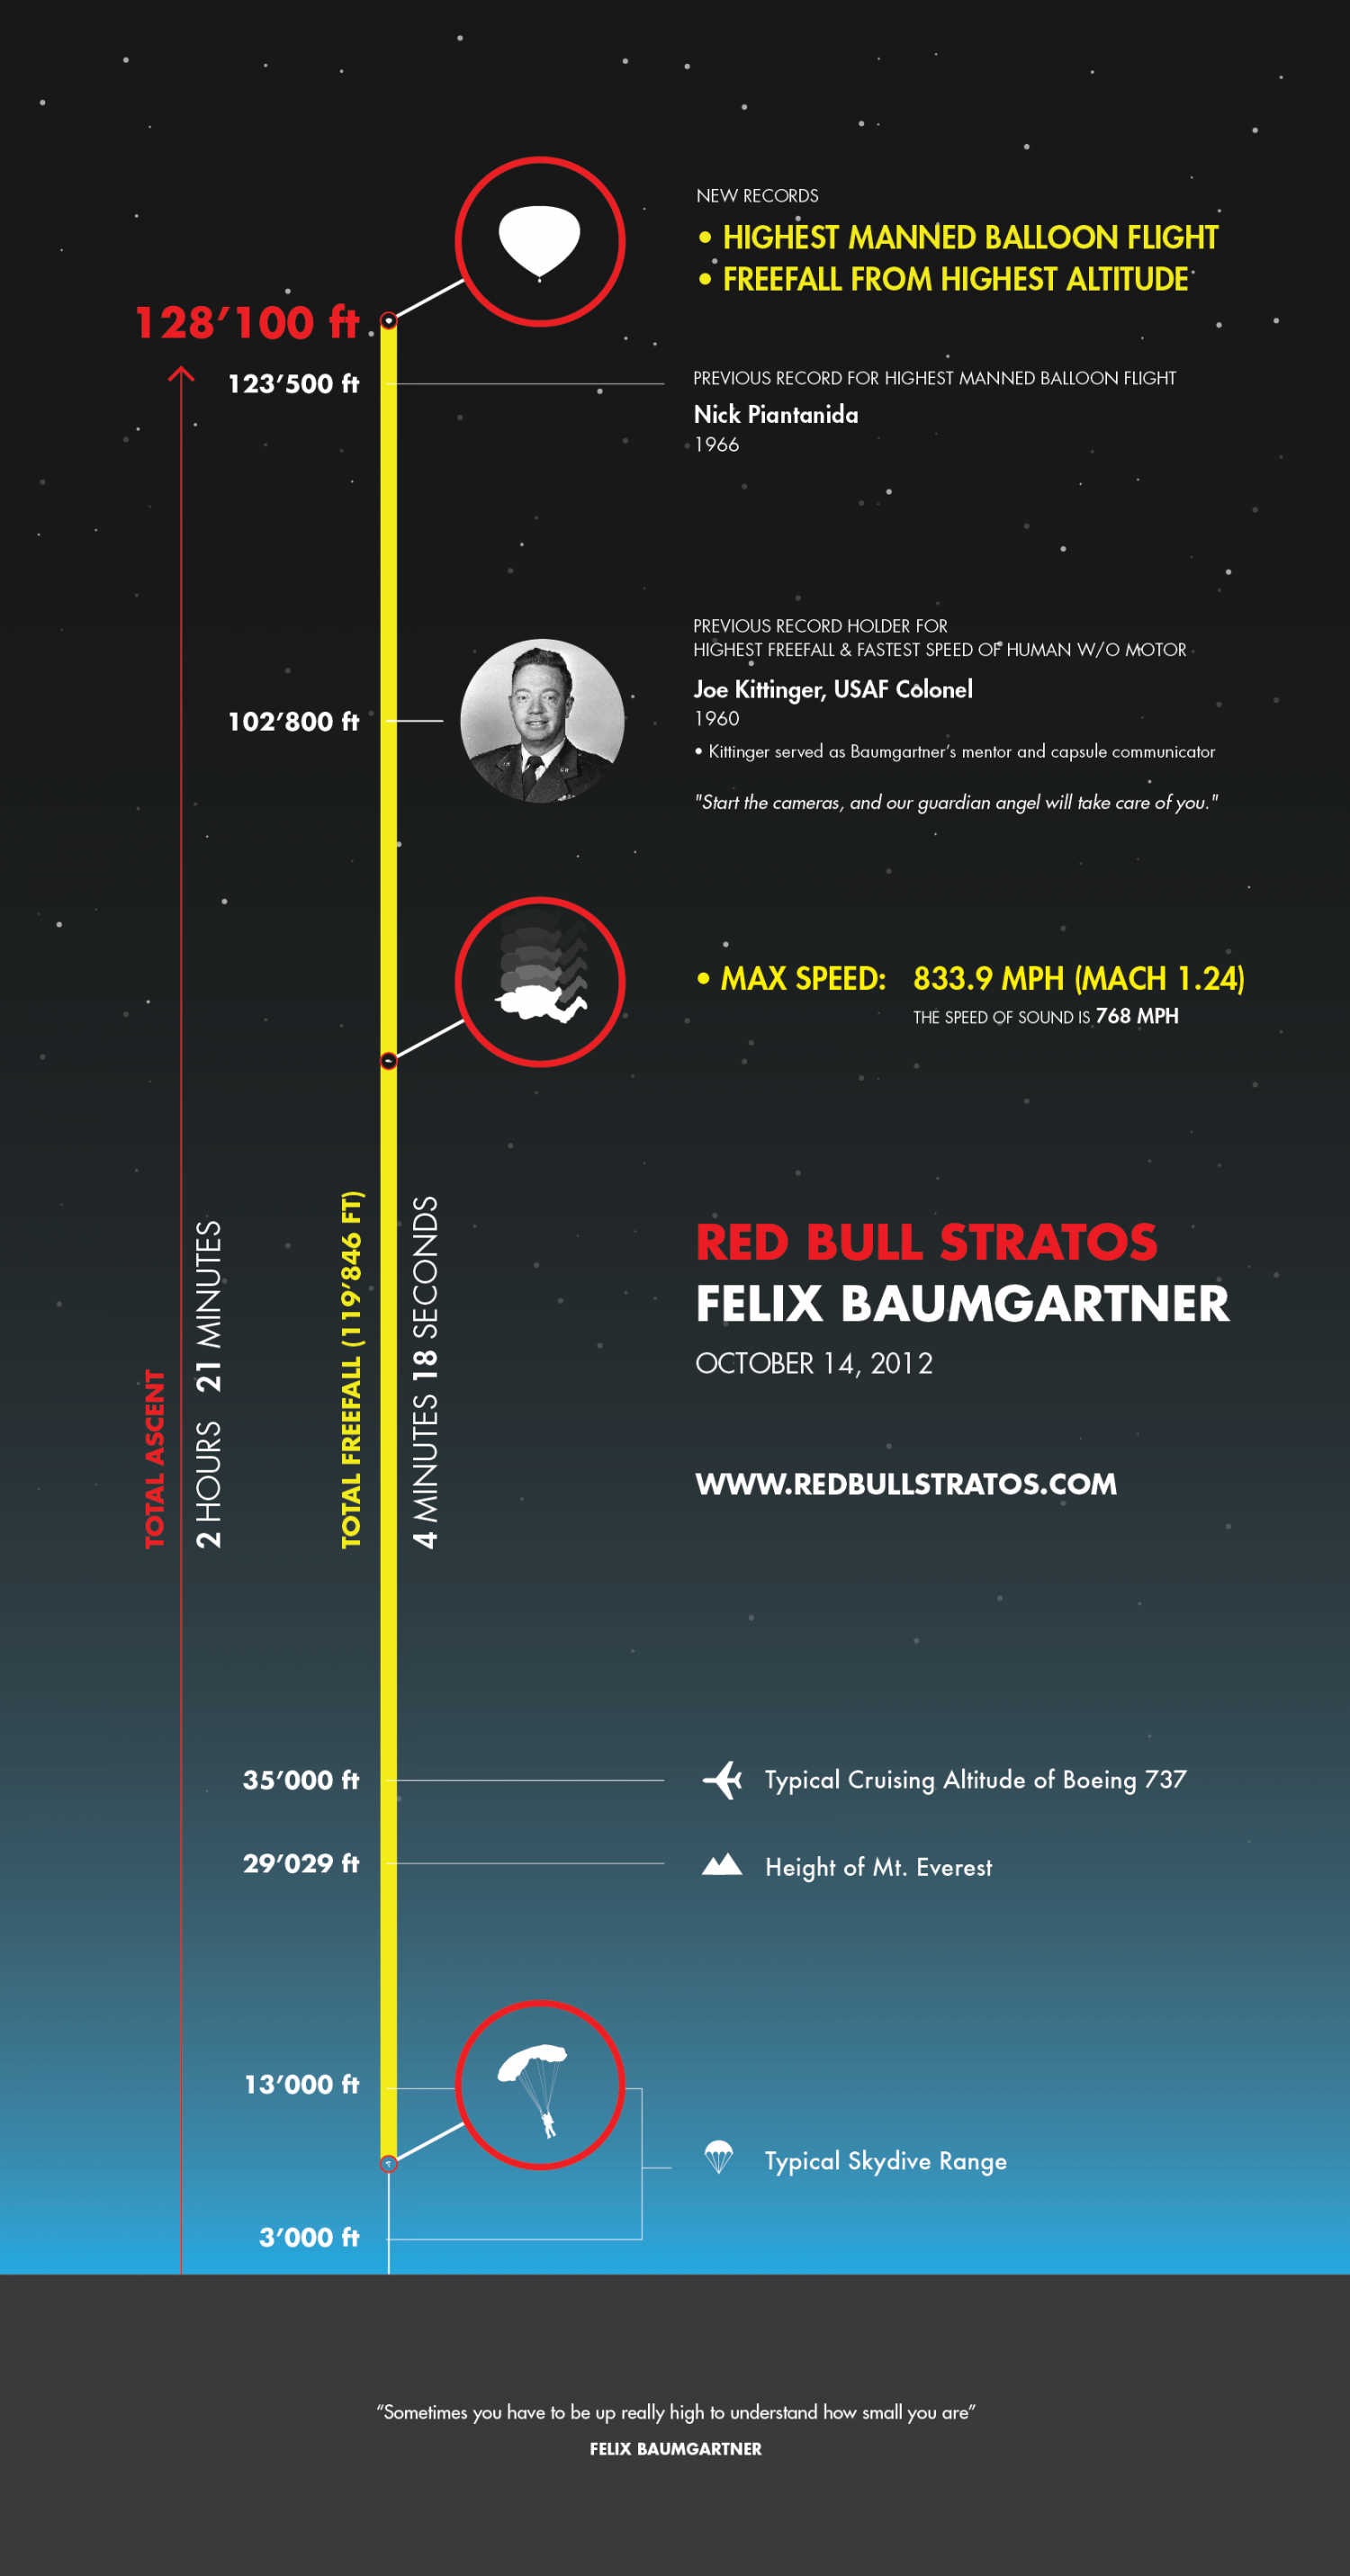 Red Bull Stratos / Felix Baumgartner Infographic